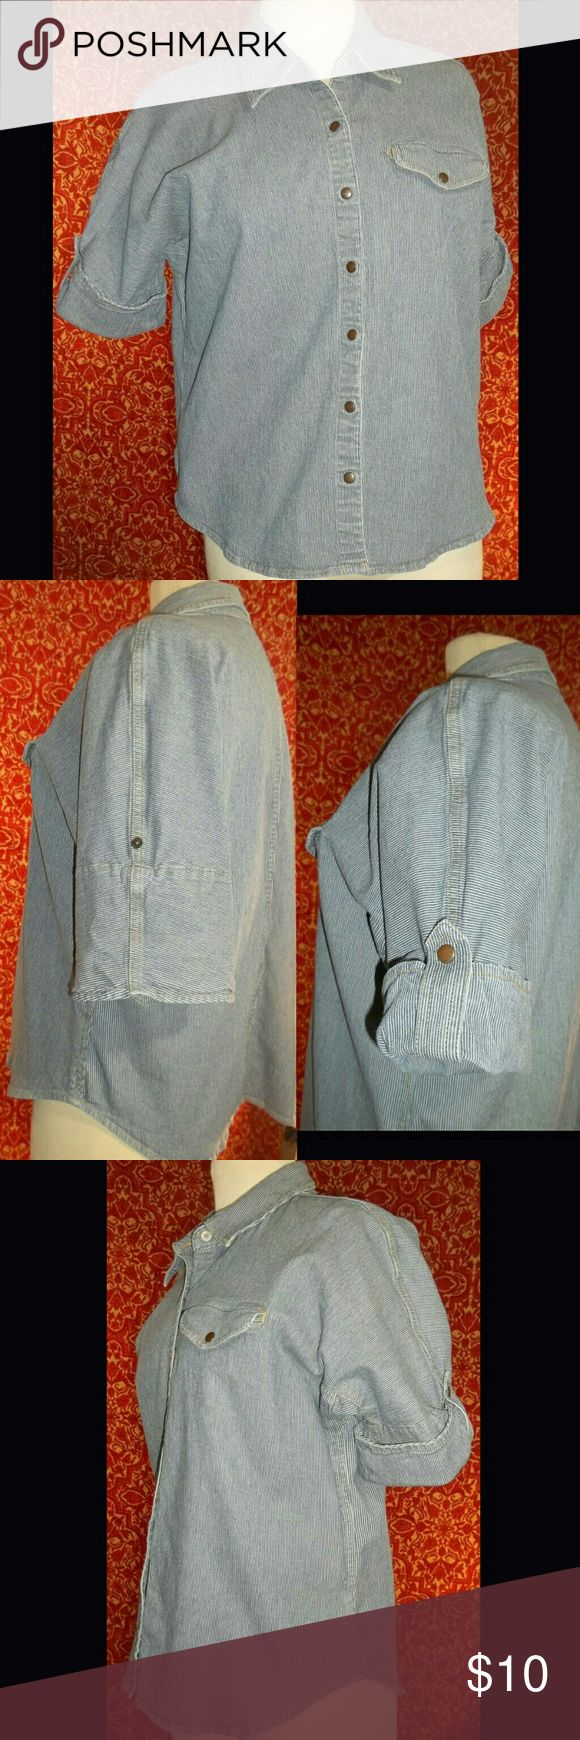 LIZ CLAIBORNE LIZWEAR PETITES batwing denim jacket Excellent condition, however posisble defect.  Underarm has ripples which resemble overstretch of the spandex, however this is present on back and front of each underarm which could mean this was by design..  Either way, does not take away from wear-ability.  Fabric is a med-thin coton denim with 2% spandex.  Snap front.  Domen/batwing almost safari style short sleeves with snap tab.  functionl single breast pocket. Liz Claiborne Tops…